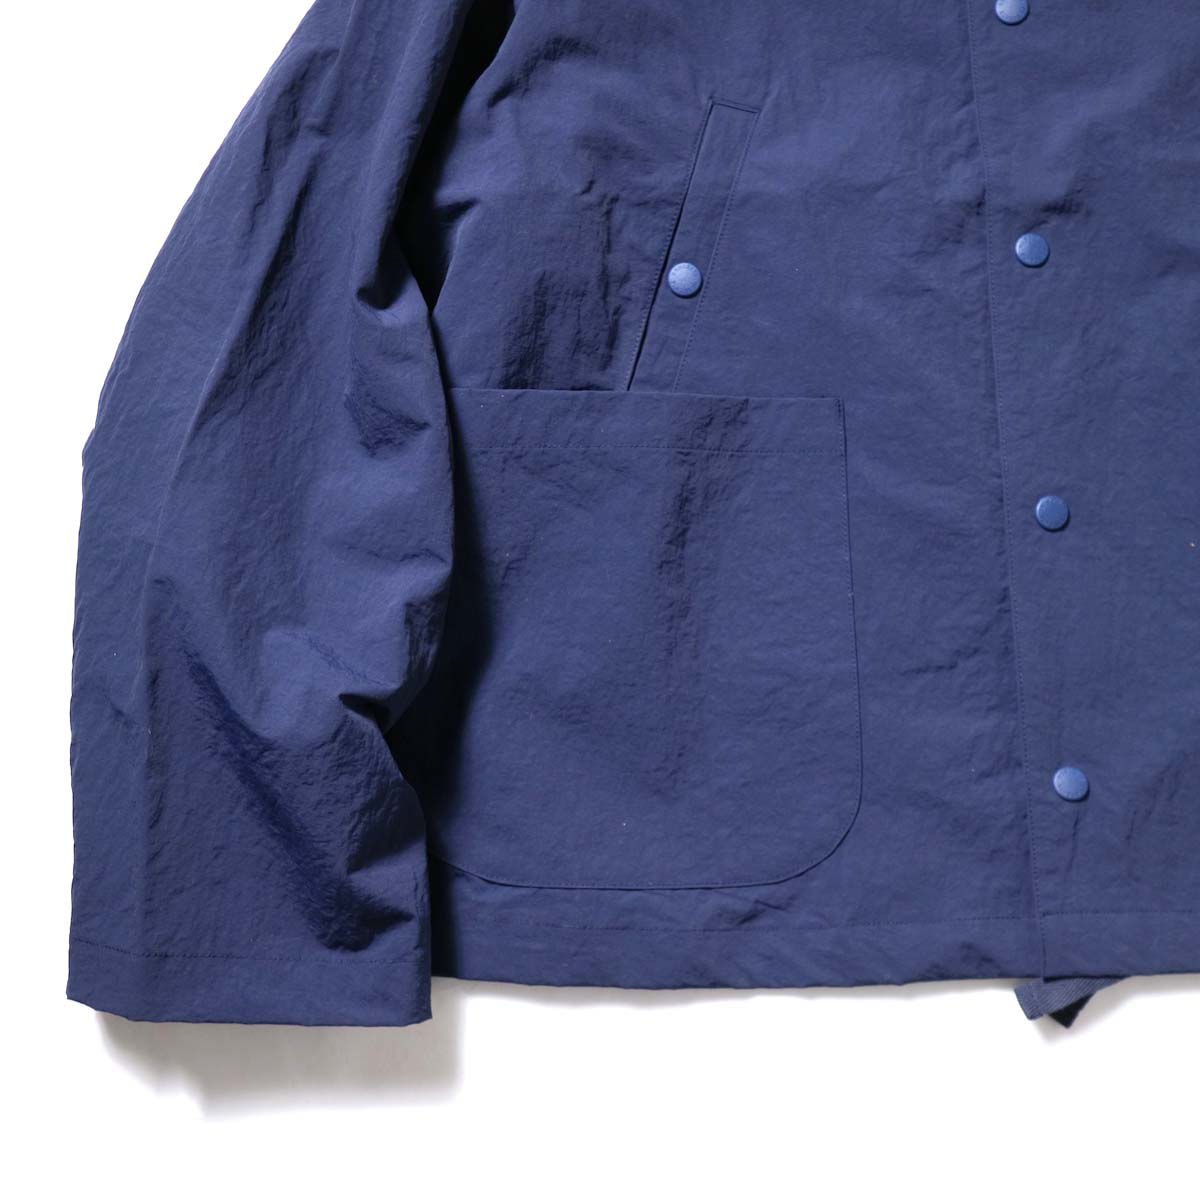 DESCENTE ddd / SWING COACH JACKET (Navy)袖・裾